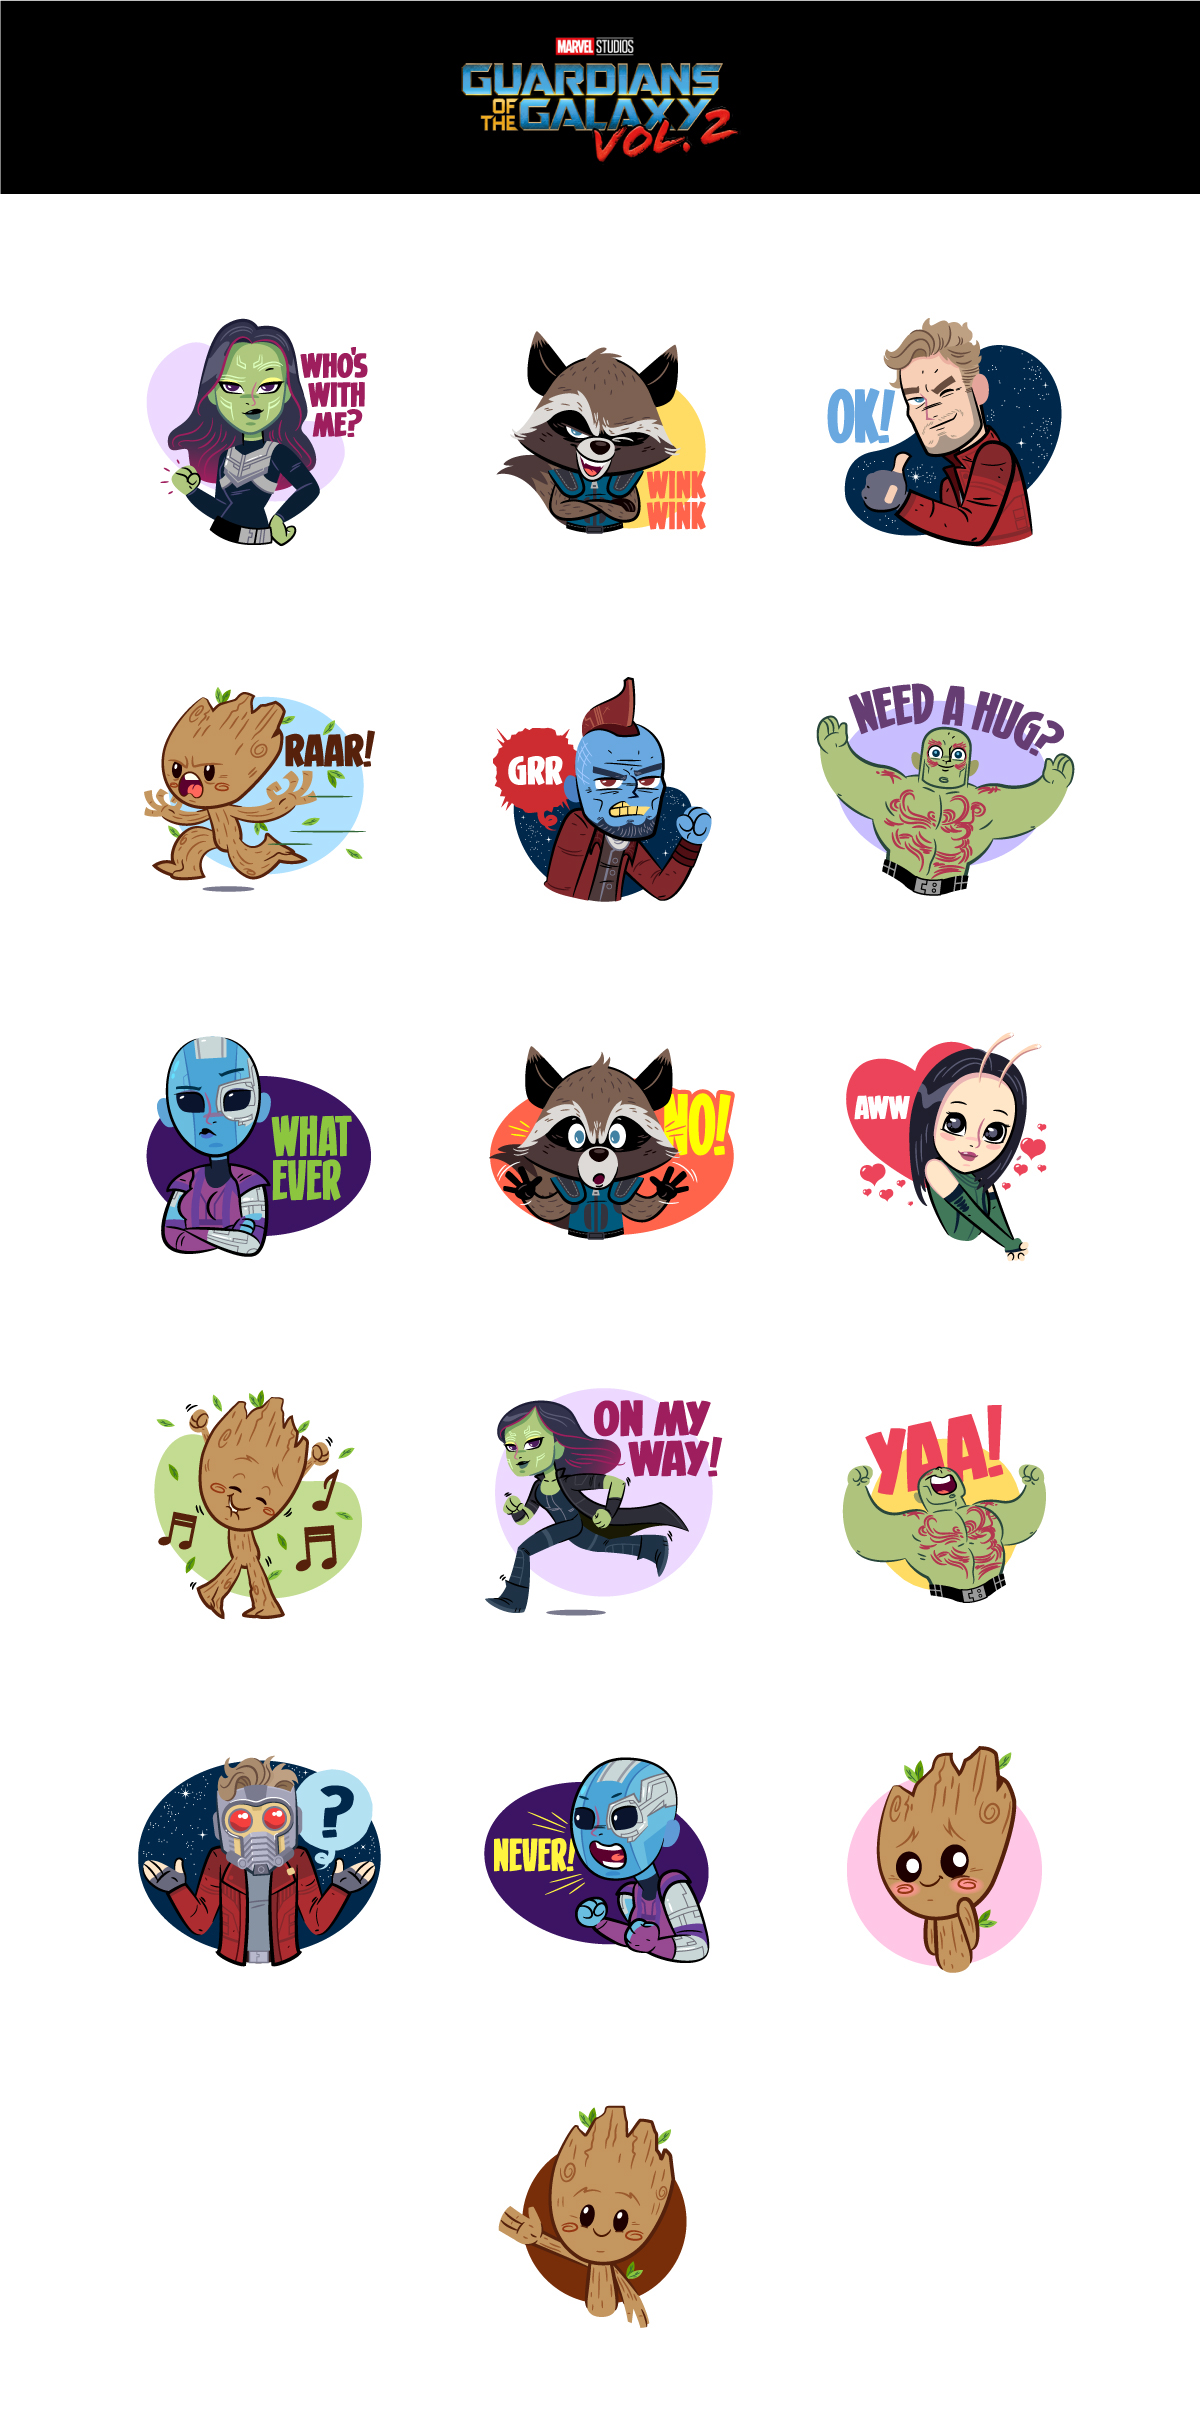 Cute Stickers For Facebook Guardians Of The Galaxy Vol2 Facebook Stickers On Behance